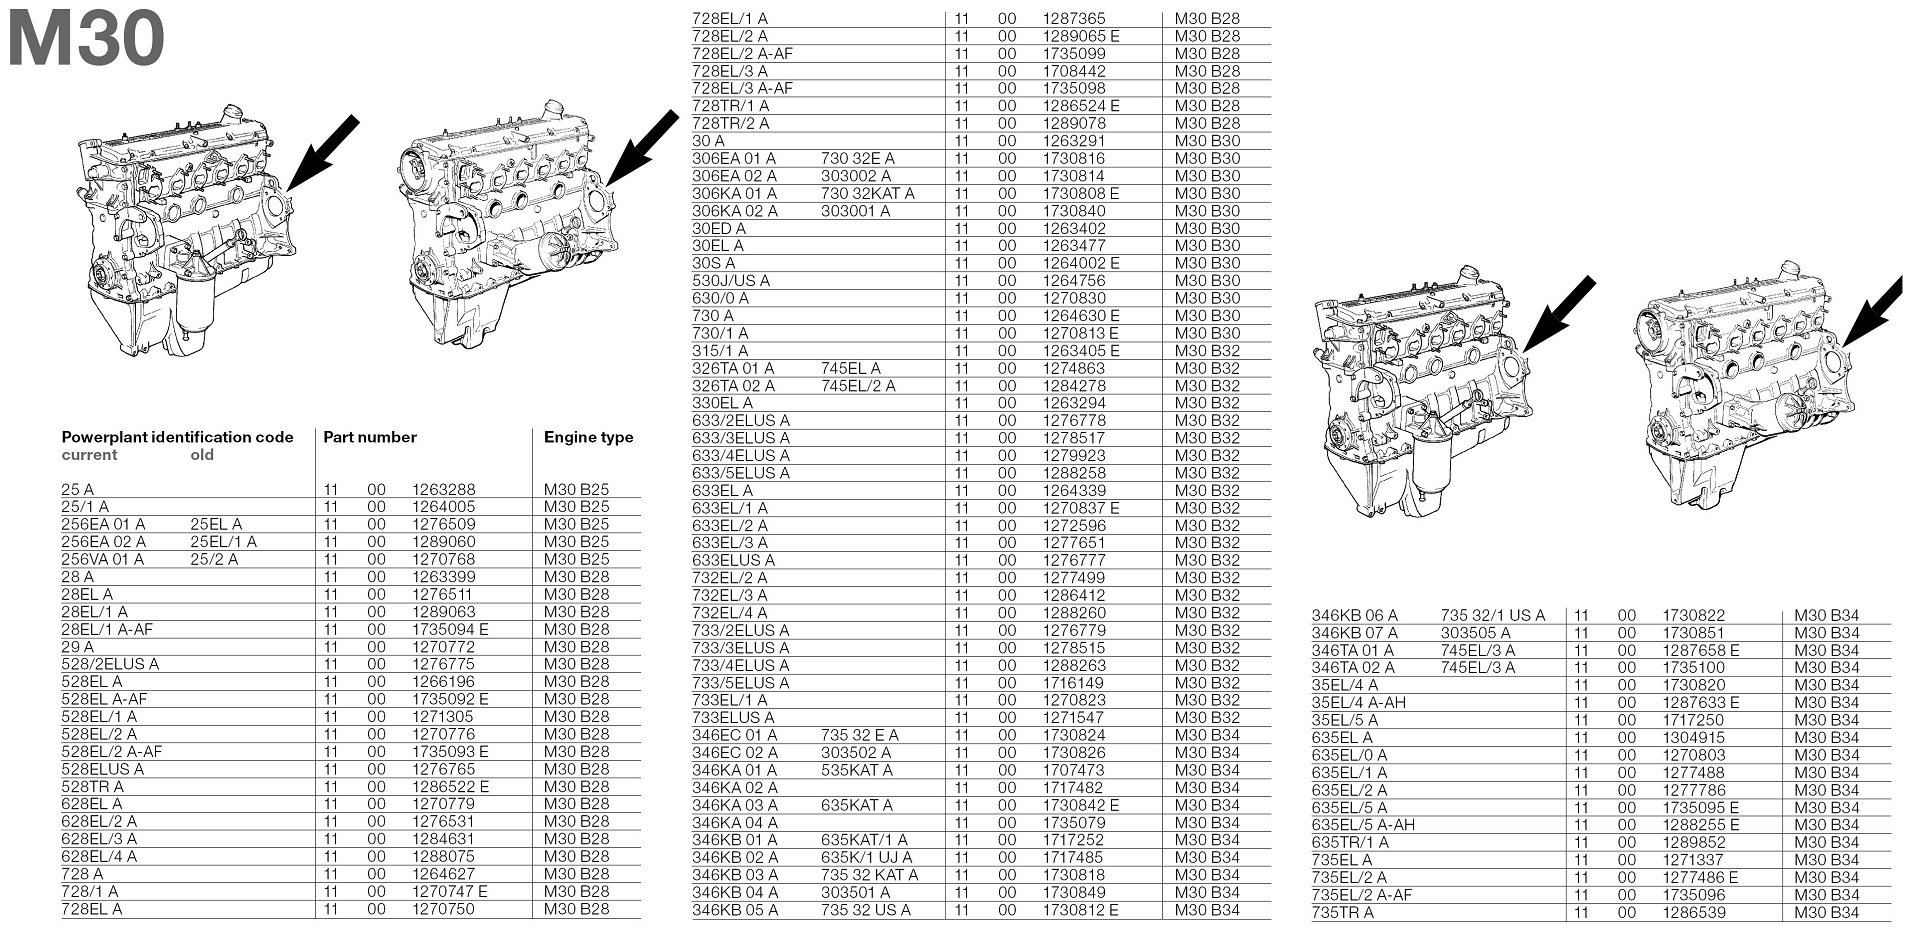 BMW M30 Engine Codes